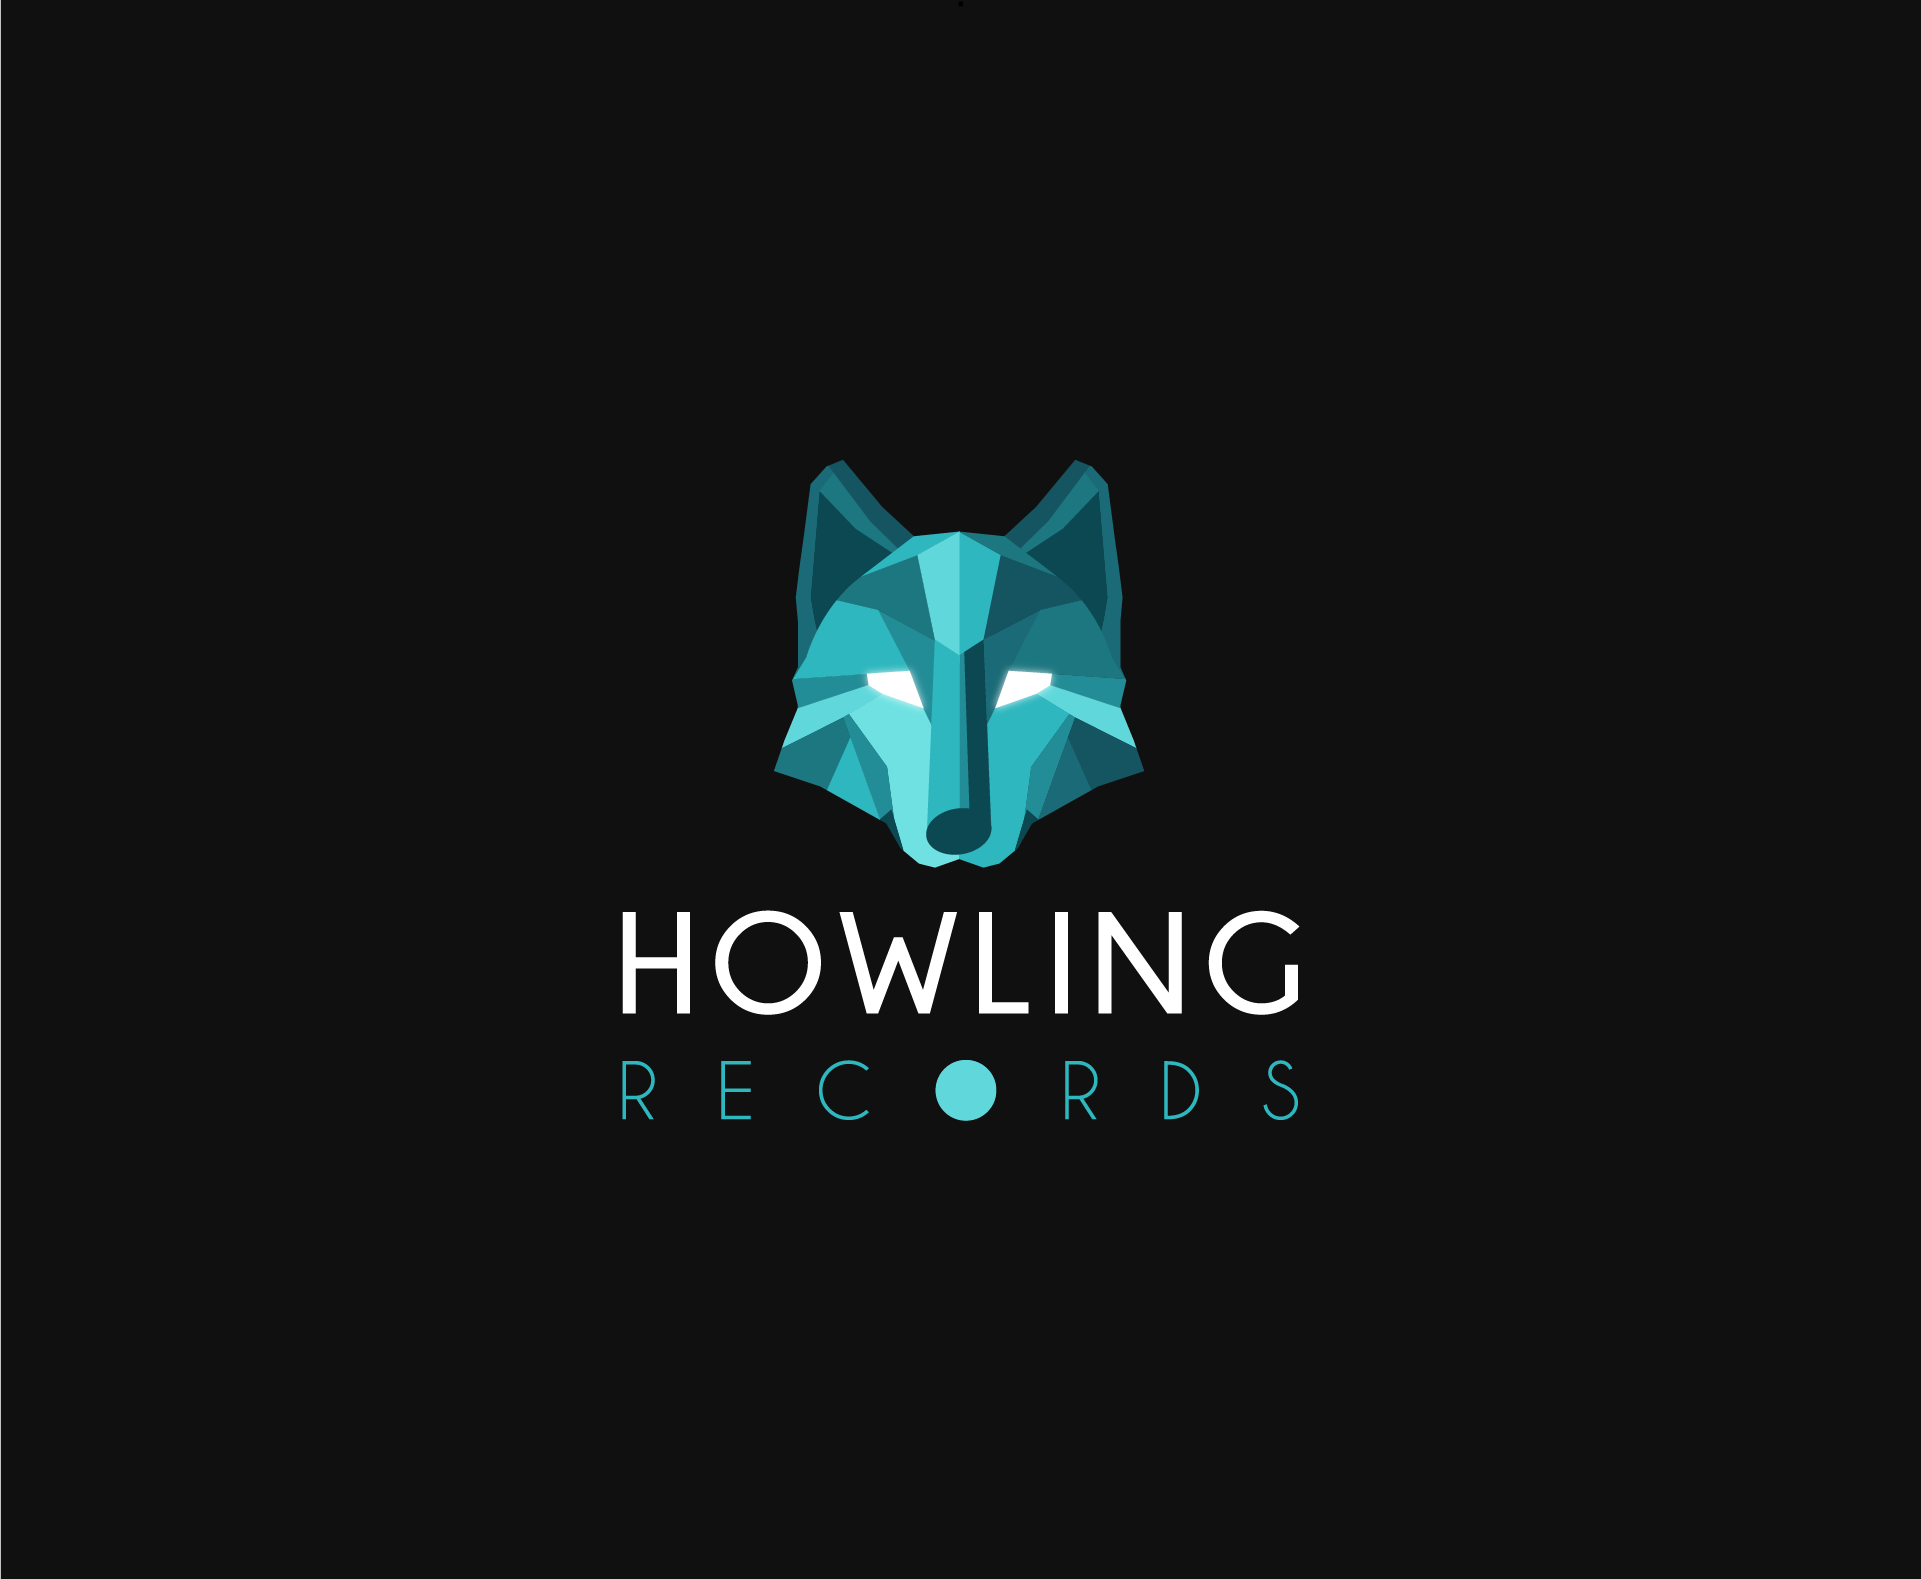 Music Studio/Record Label Logo Needed - Howling Records